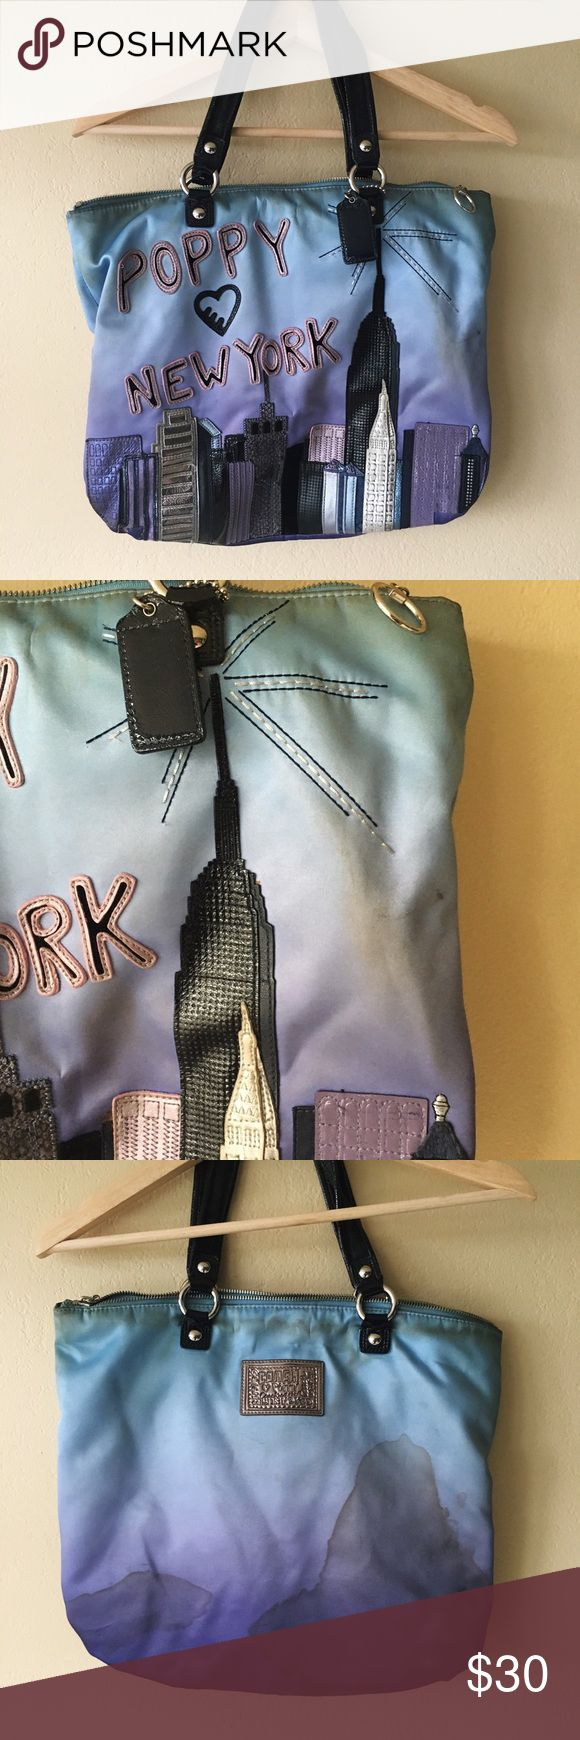 💎NYC skyline Coach Bag💎 🌃Poppy 💗's NYC Coach Bag. ***bag has stain damage, please see photos for details*** I love this bag but can't get the stains out. Maybe you can? Very open to offers on the beauty🌃                                                     🚫🚬Smoke Free Home 🚬🚫 ✨💌Quick Shipping 💌✨ 💲✔️Offers Welcome✔️💲 ‼️Bundle Discounts‼️ Coach Bags Shoulder Bags